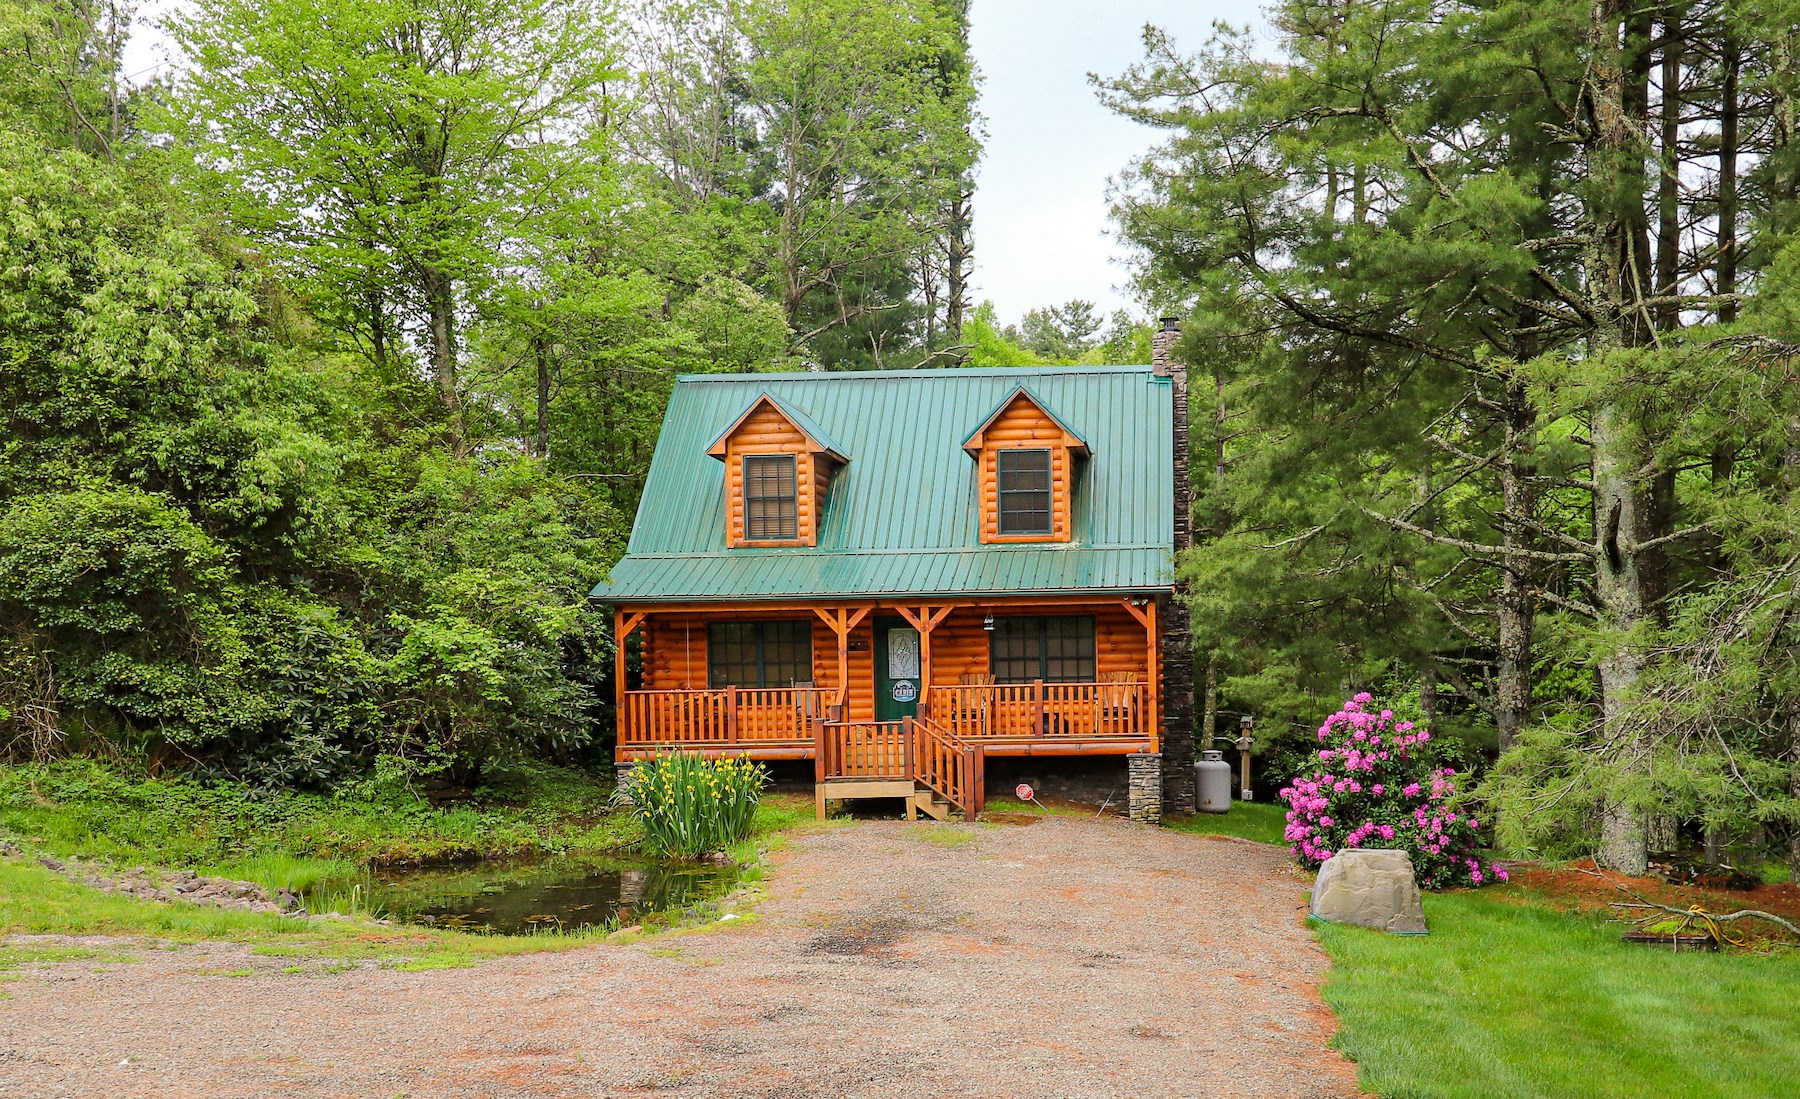 Stunning Cabin with Waterfall for Sale in Ennice NC!